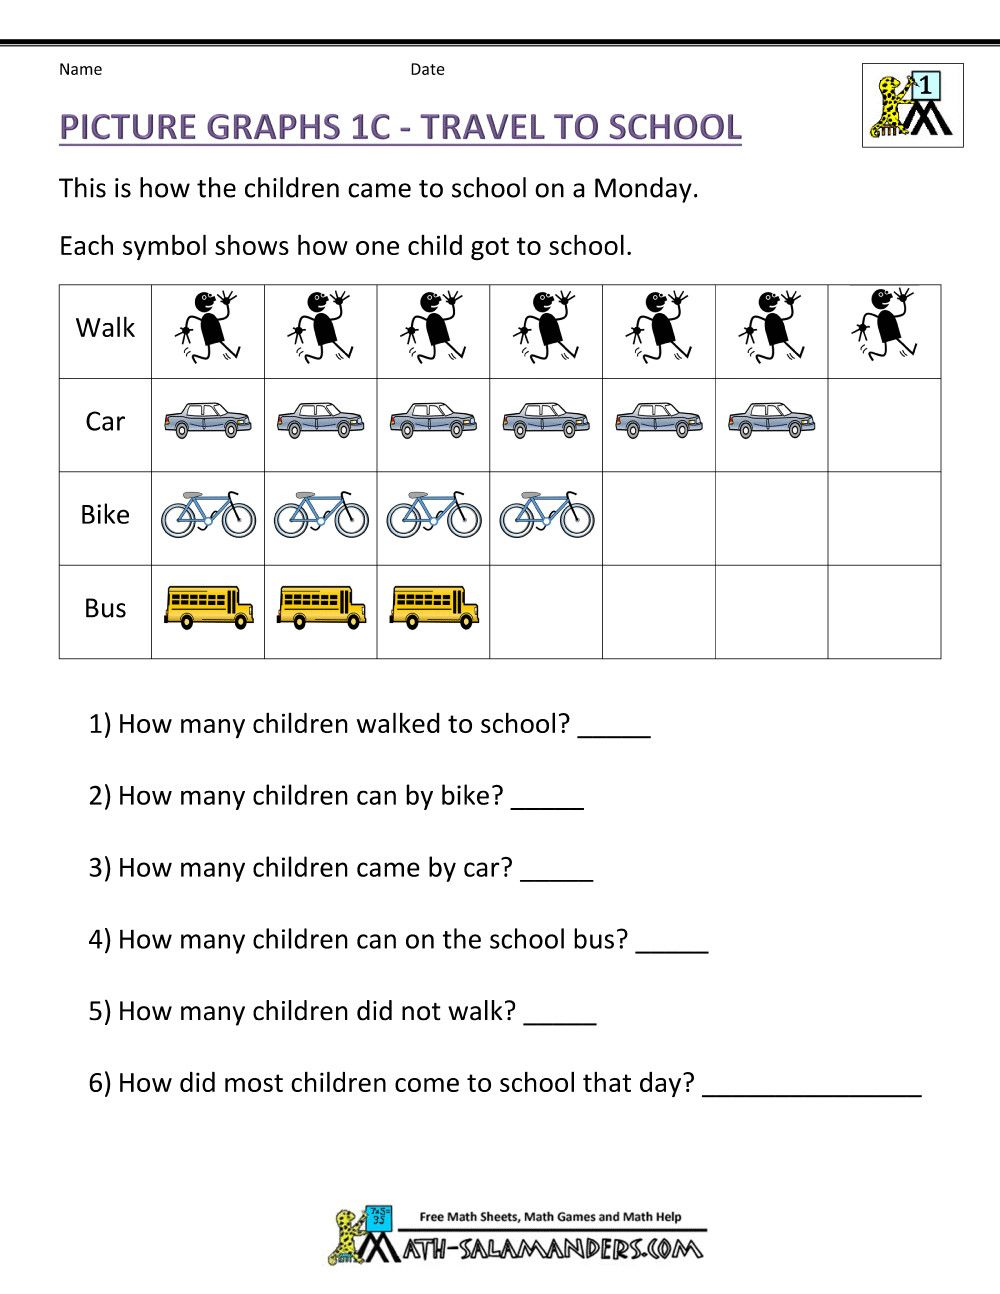 7 Tally Charts Worksheet For Kids In 2020 Picture Graph Worksheets Graphing Worksheets Graphing First Grade